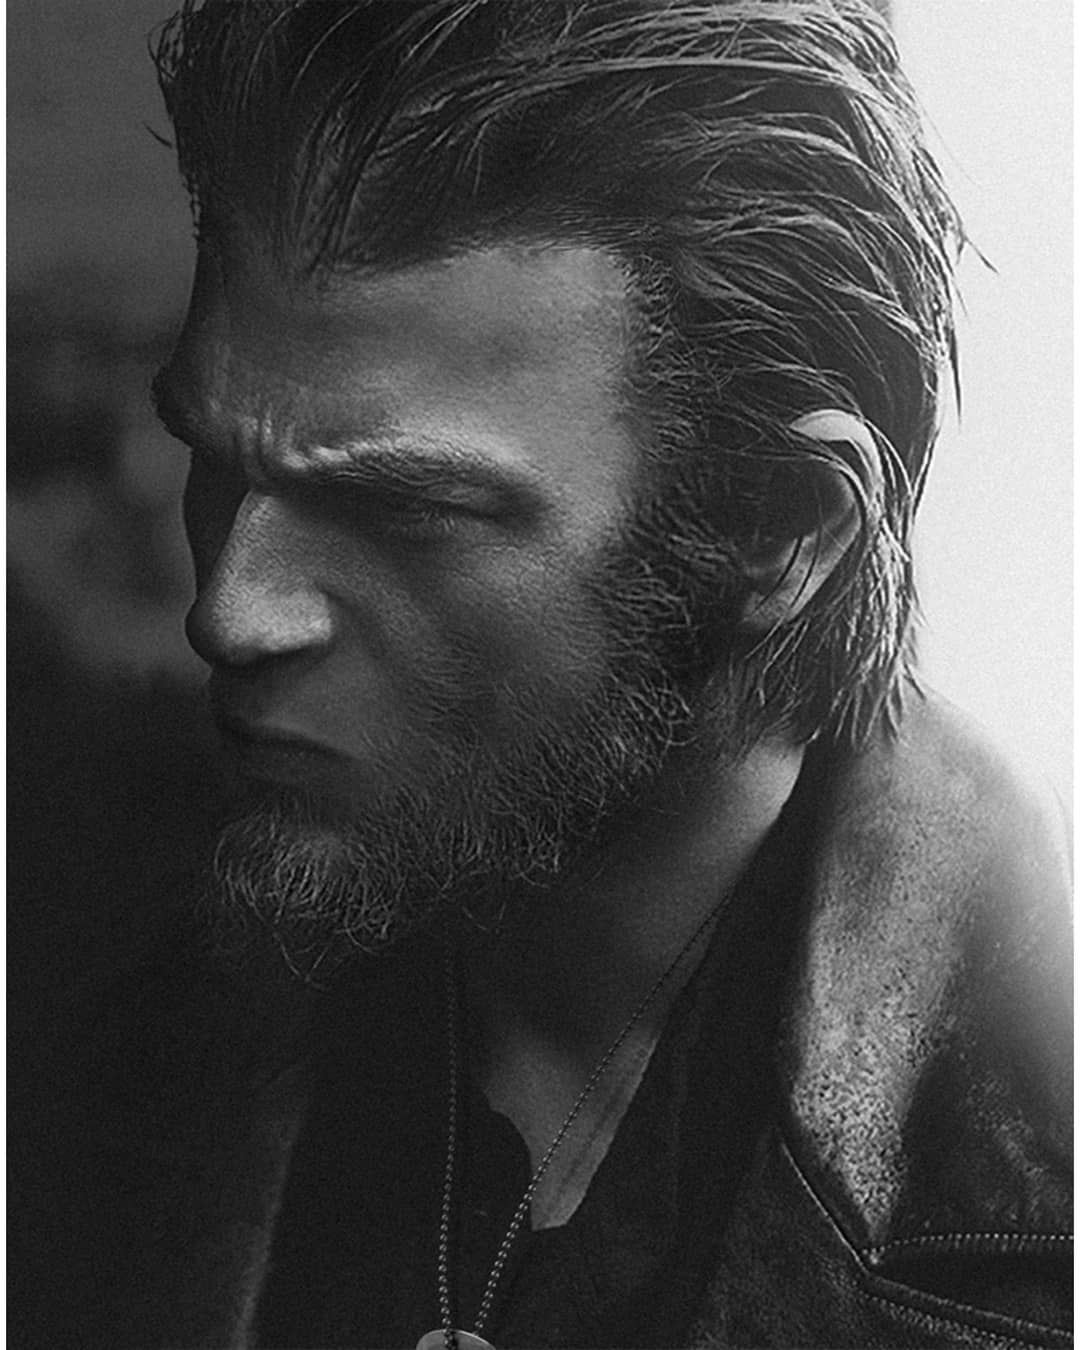 926a071dff6 Here's How Charlie Hunnam Could Look As The Next Wolverine